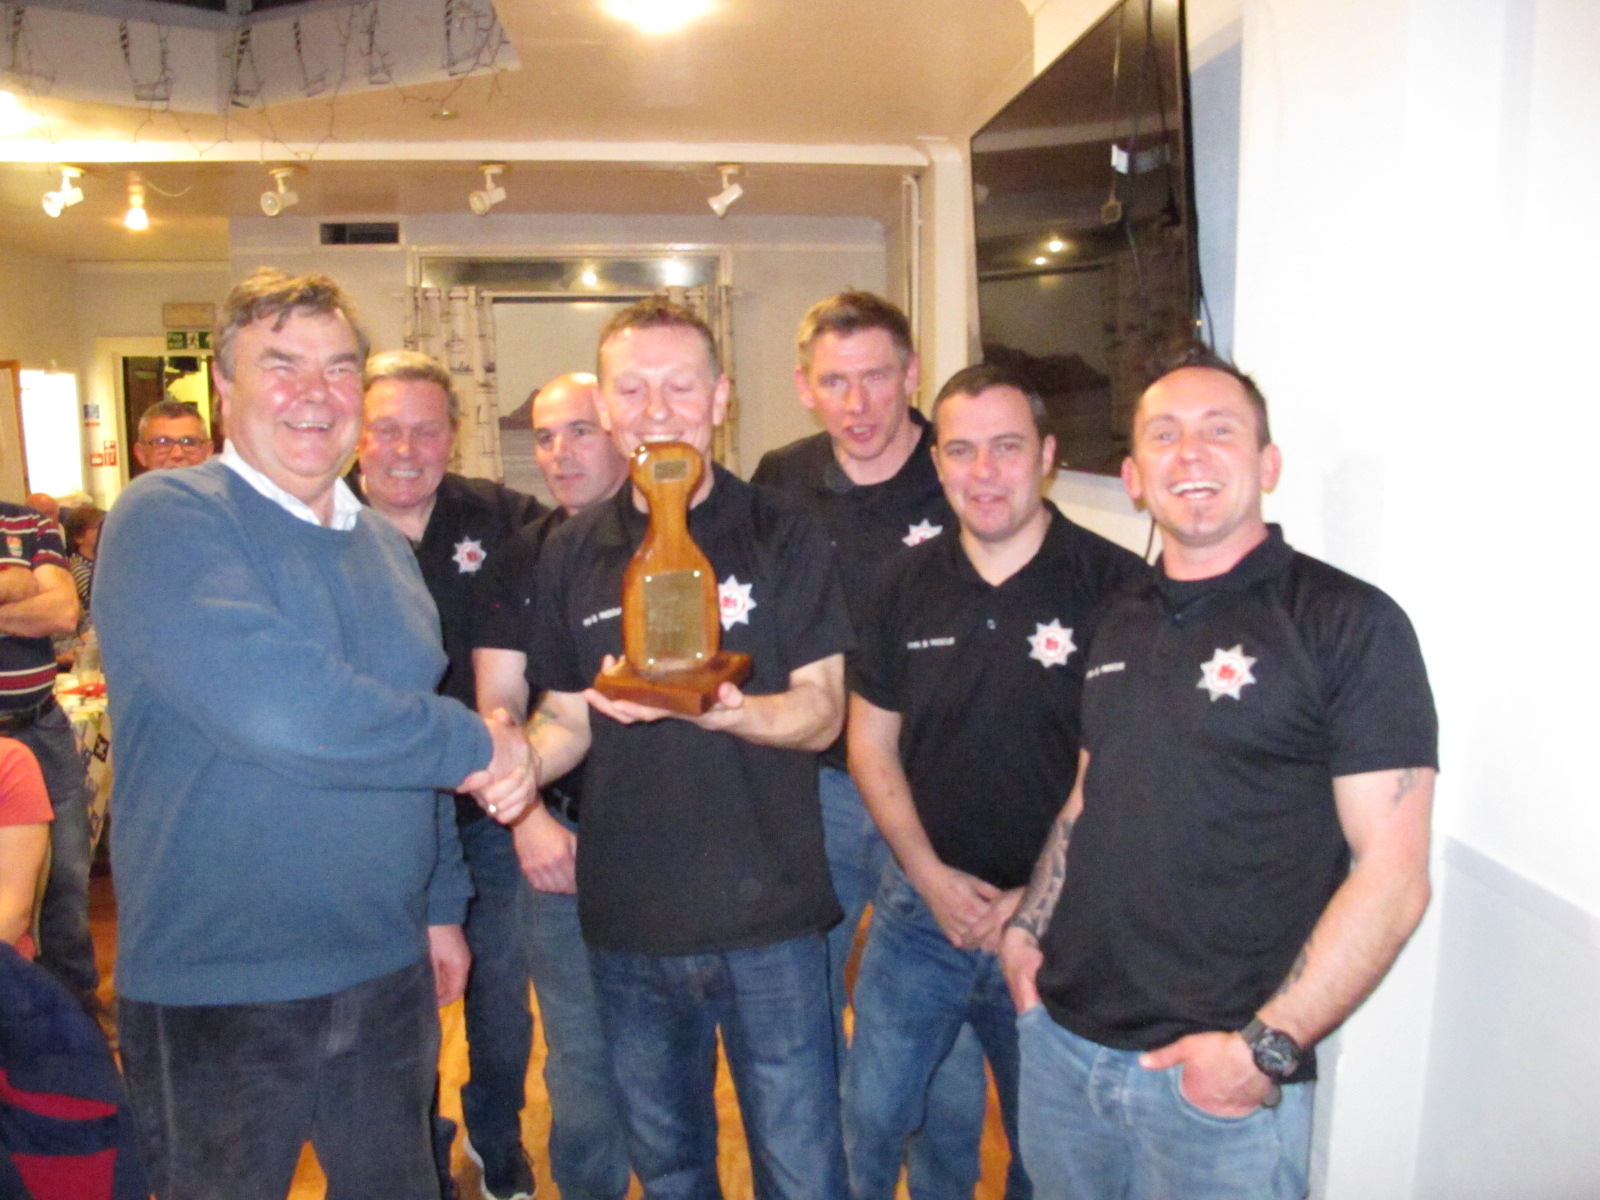 Bob Gilbert, RNLI Chairman of Fundraising, hands the trophy to the victorious volunteers from the Dartmouth Fire station.